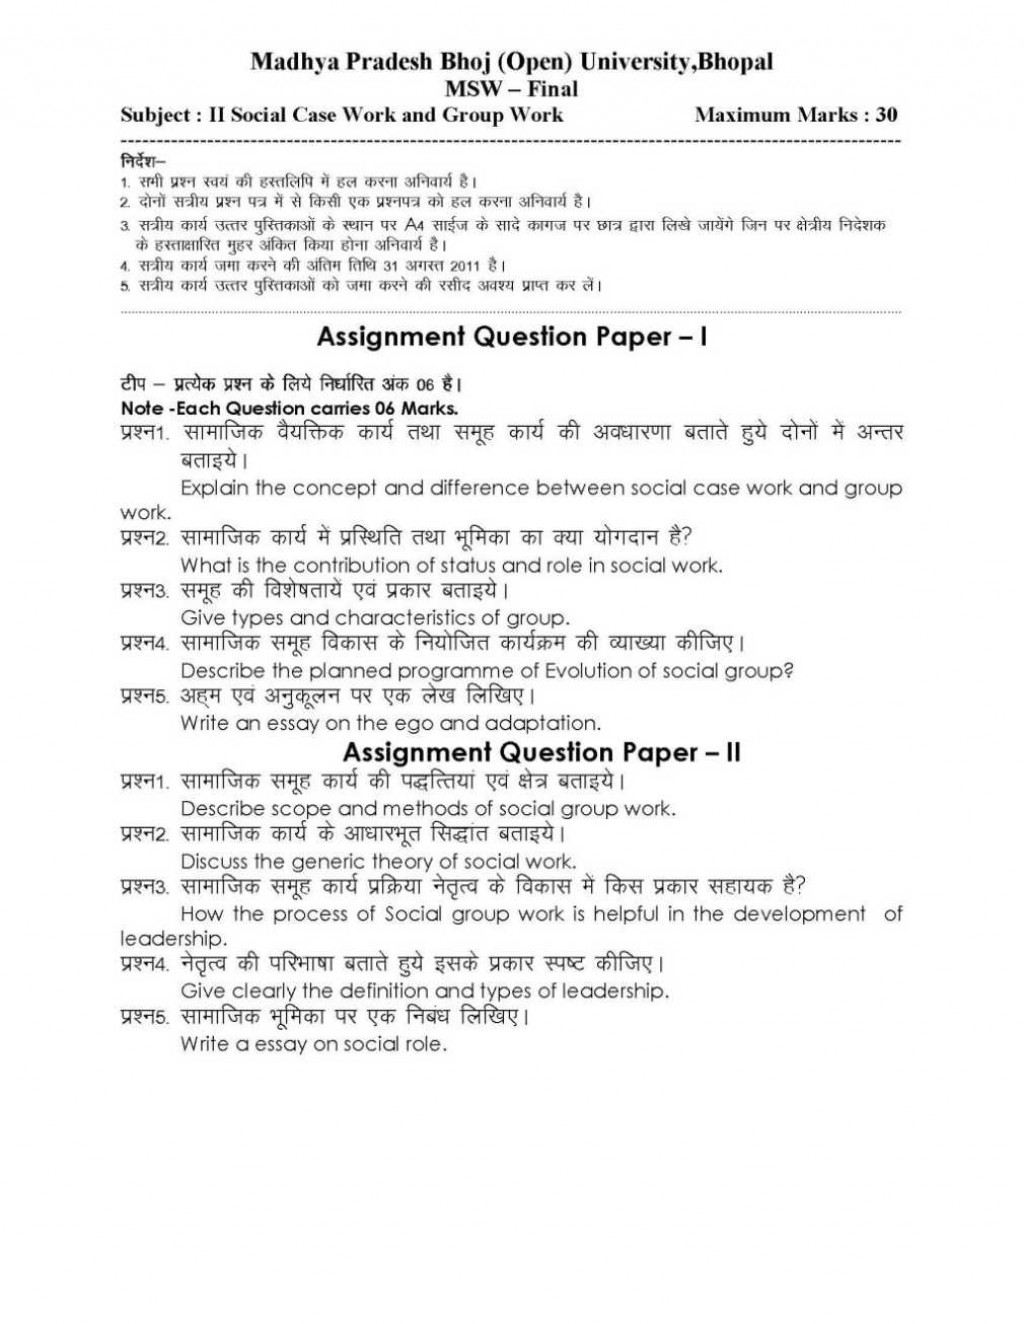 009 Leadership Essays Essay Example Bhoj University Bhopal Msw Striking Chevening Samples Uc Examples Large